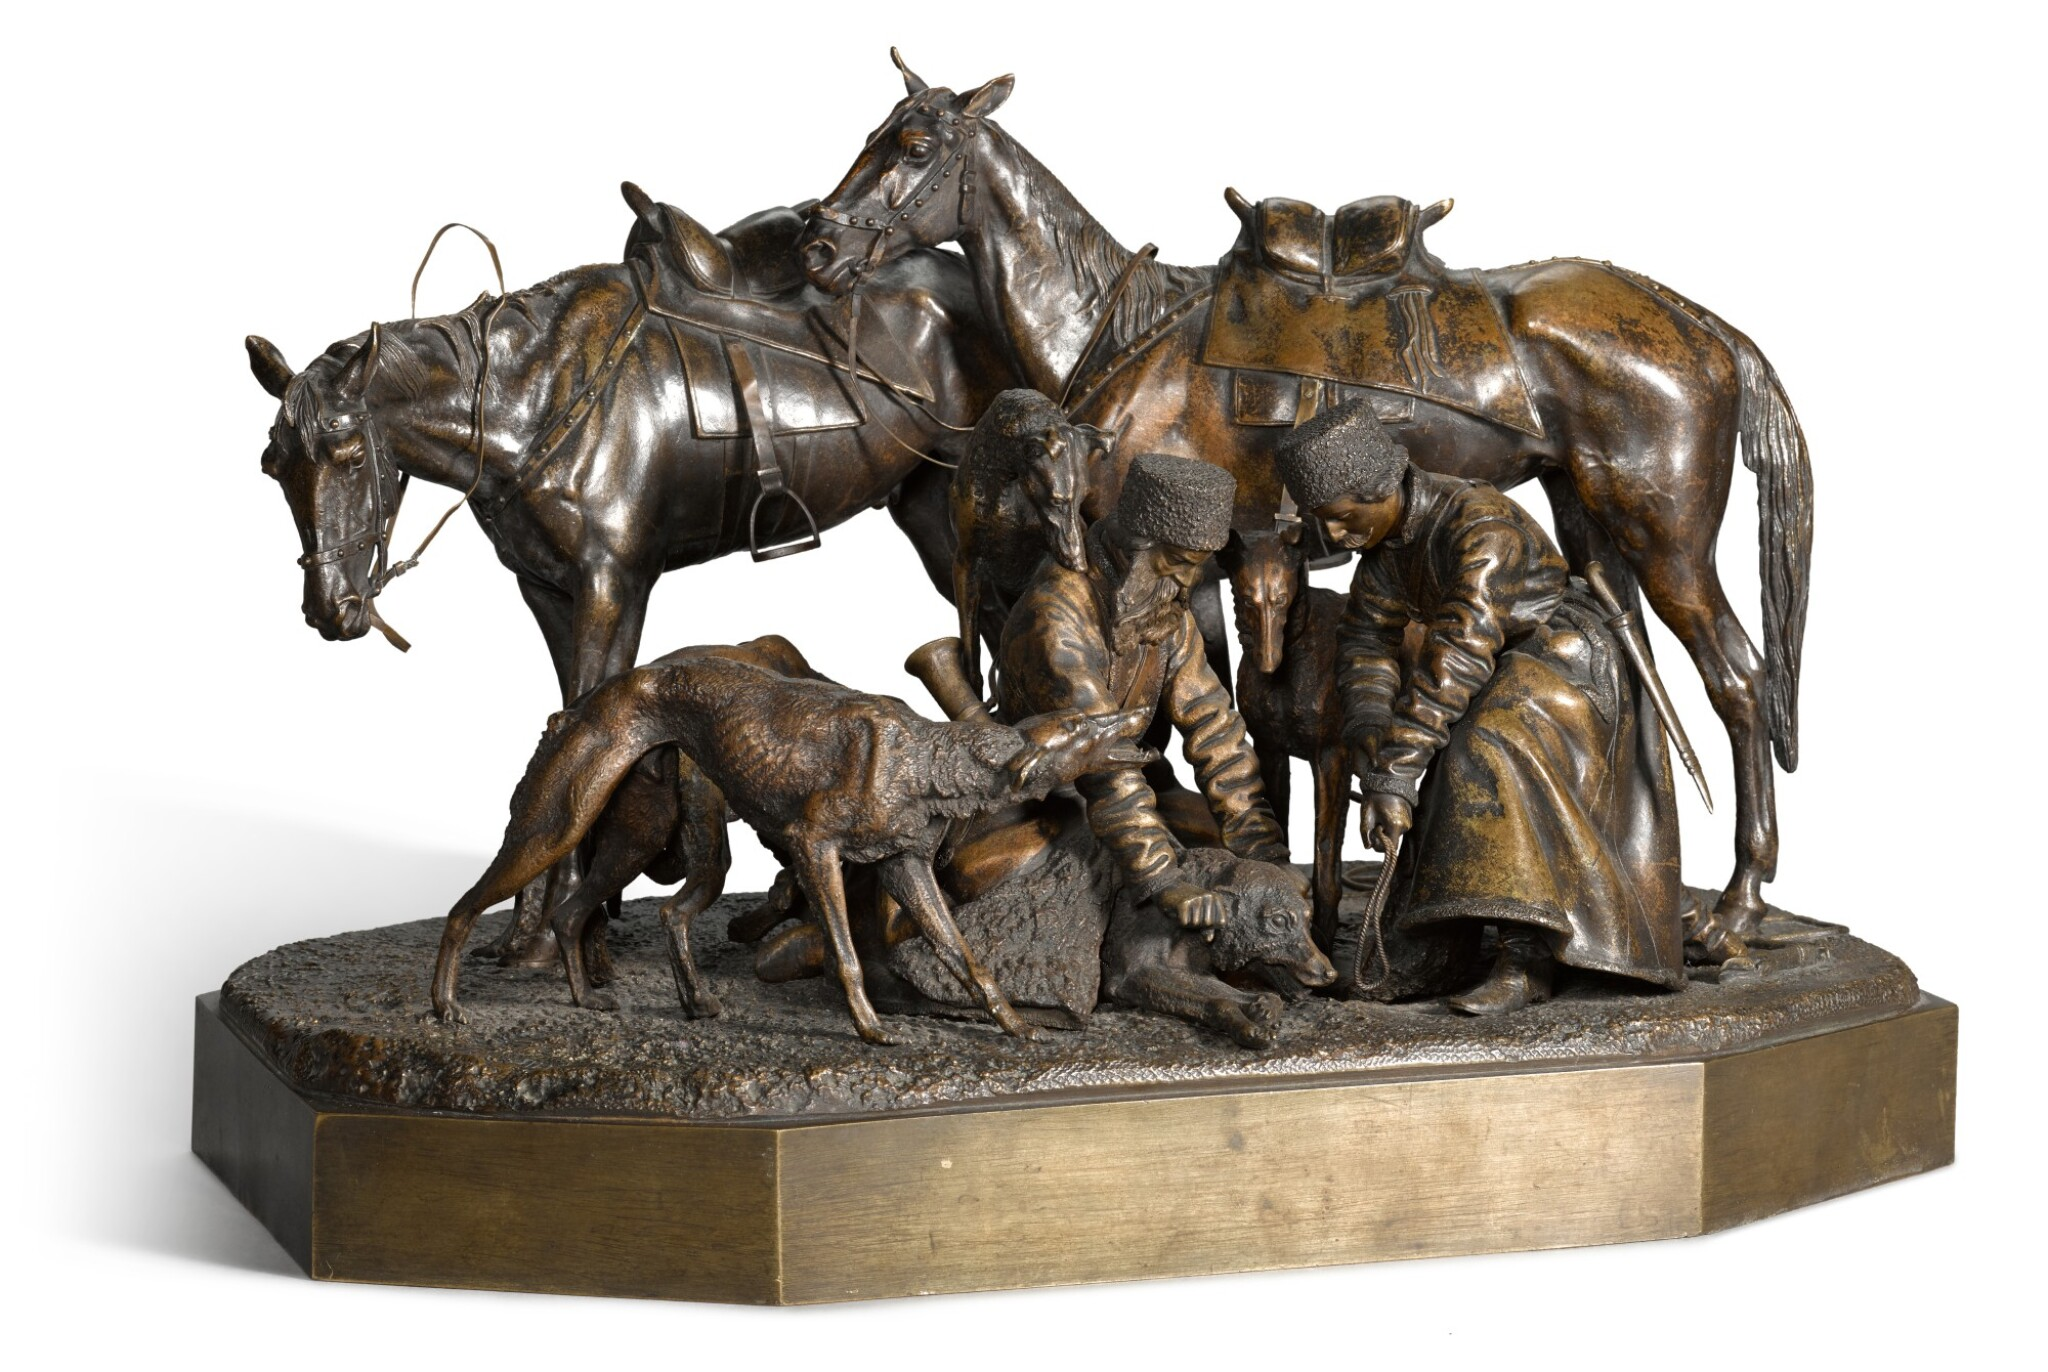 View full screen - View 1 of Lot 293. Binding the Wolf: a bronze figural group, cast by Woerffel, after the model by Nikolai Lieberich (1828-1883), 1884.